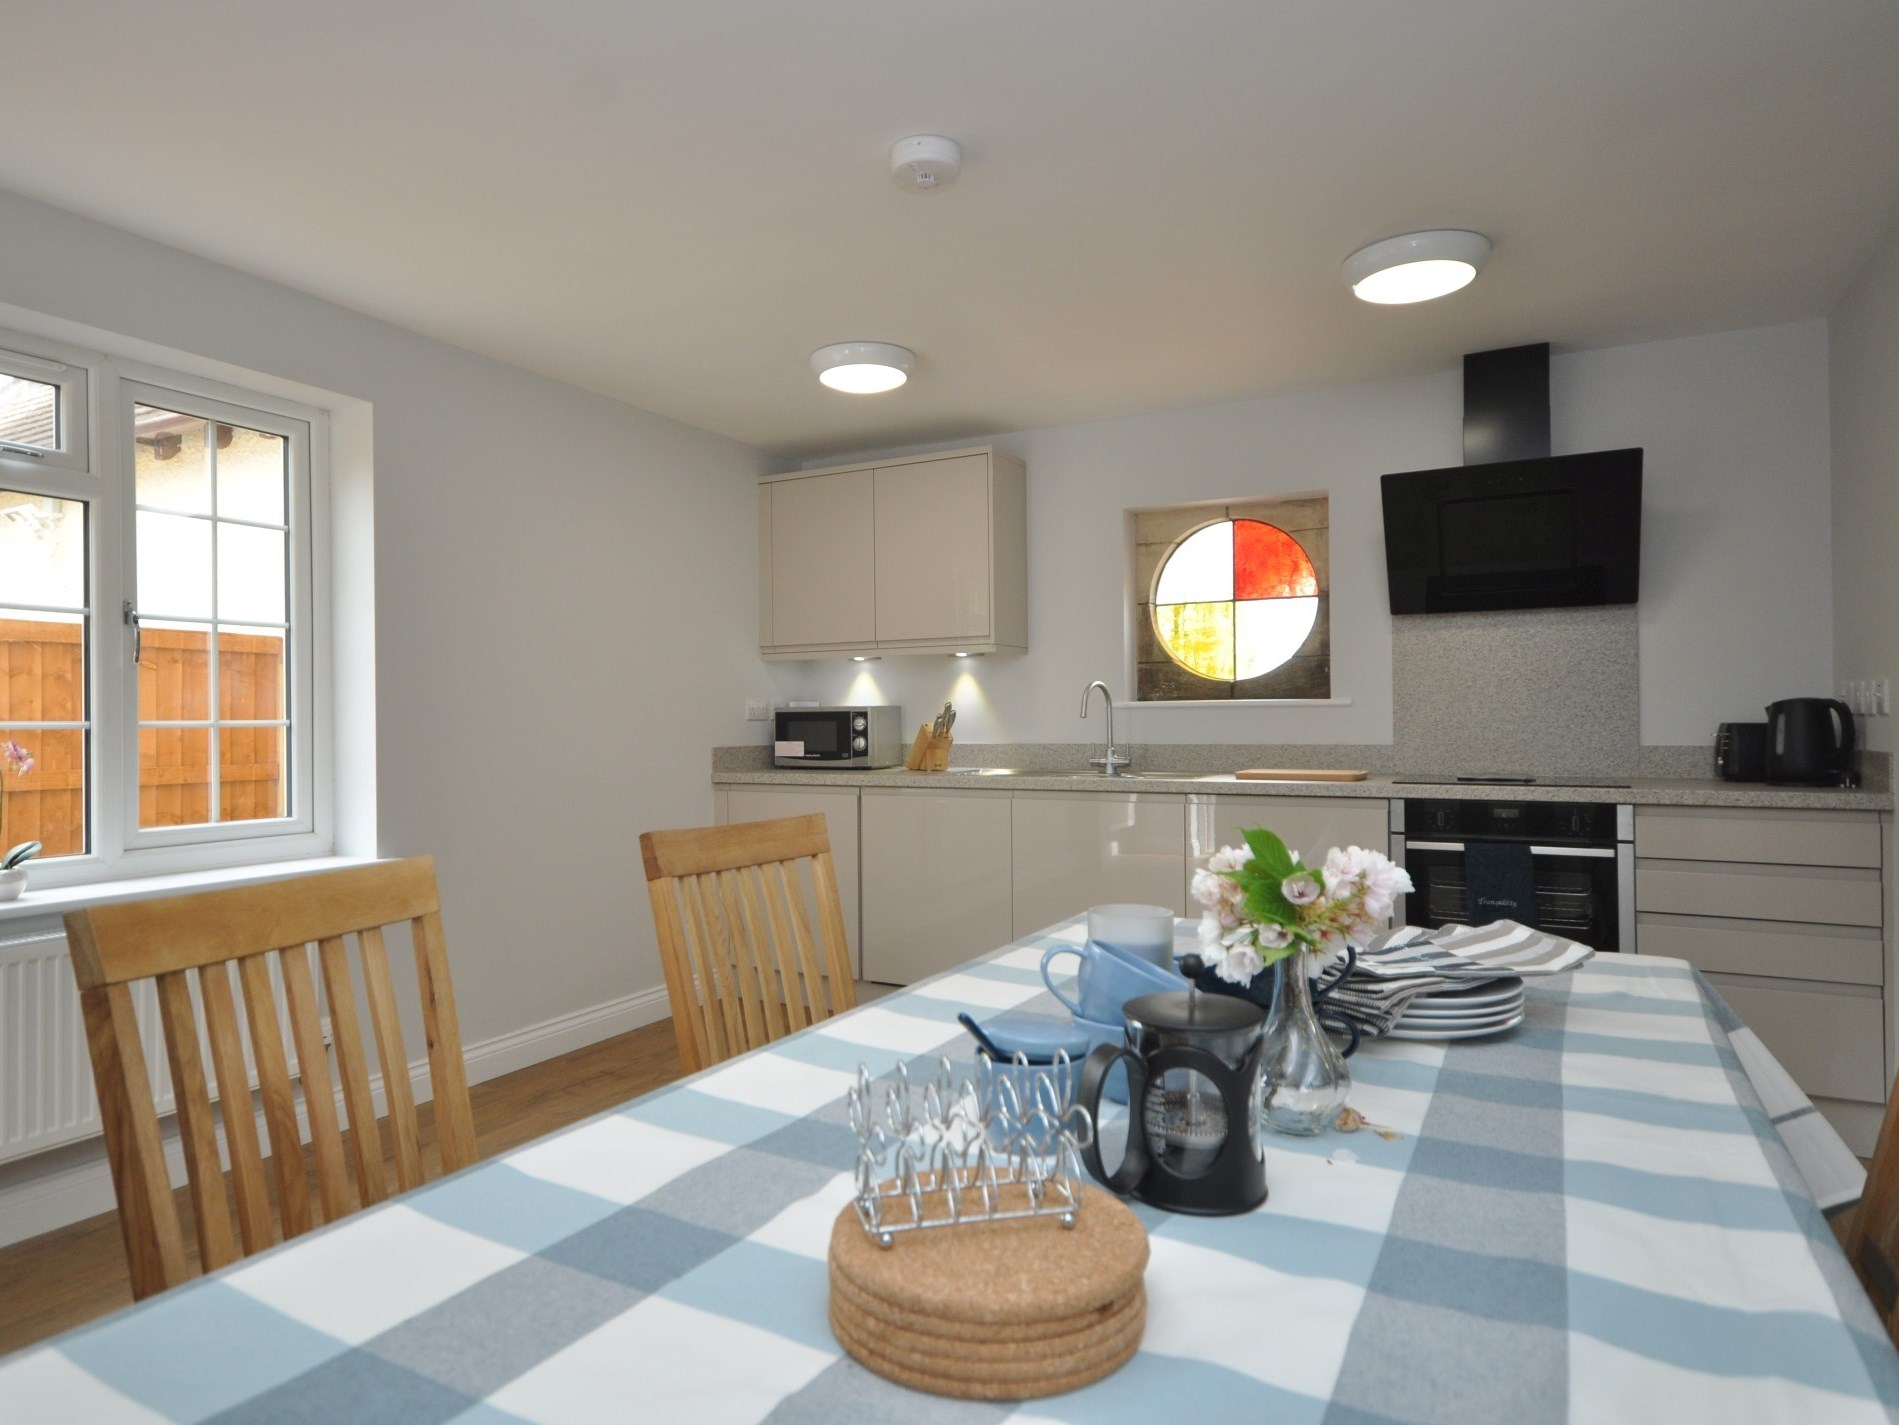 The kitchen/diner is perfect for entertaining